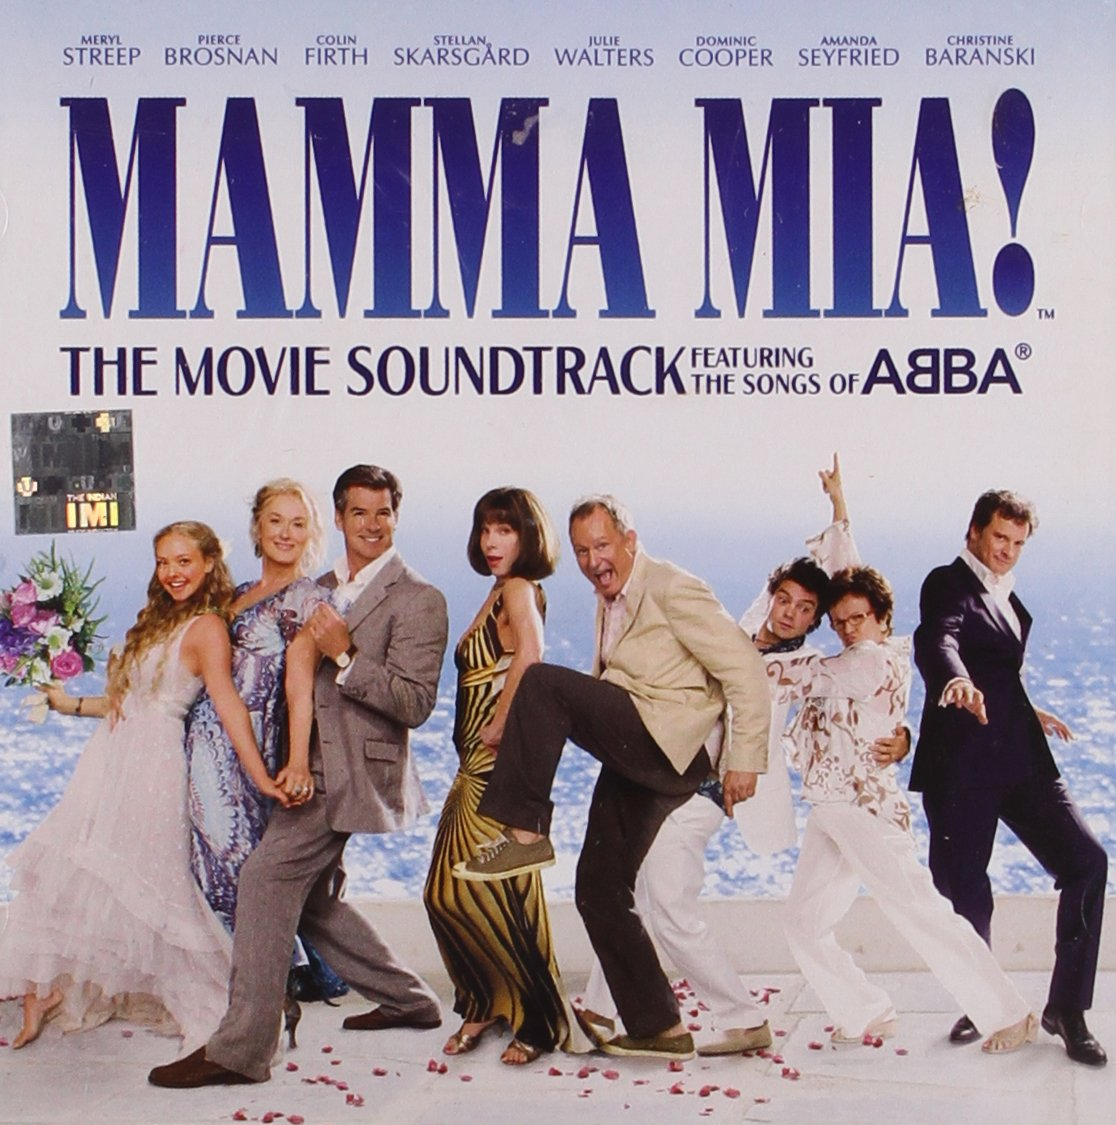 Mamma Mia! The Movie Soundtrack by Decca